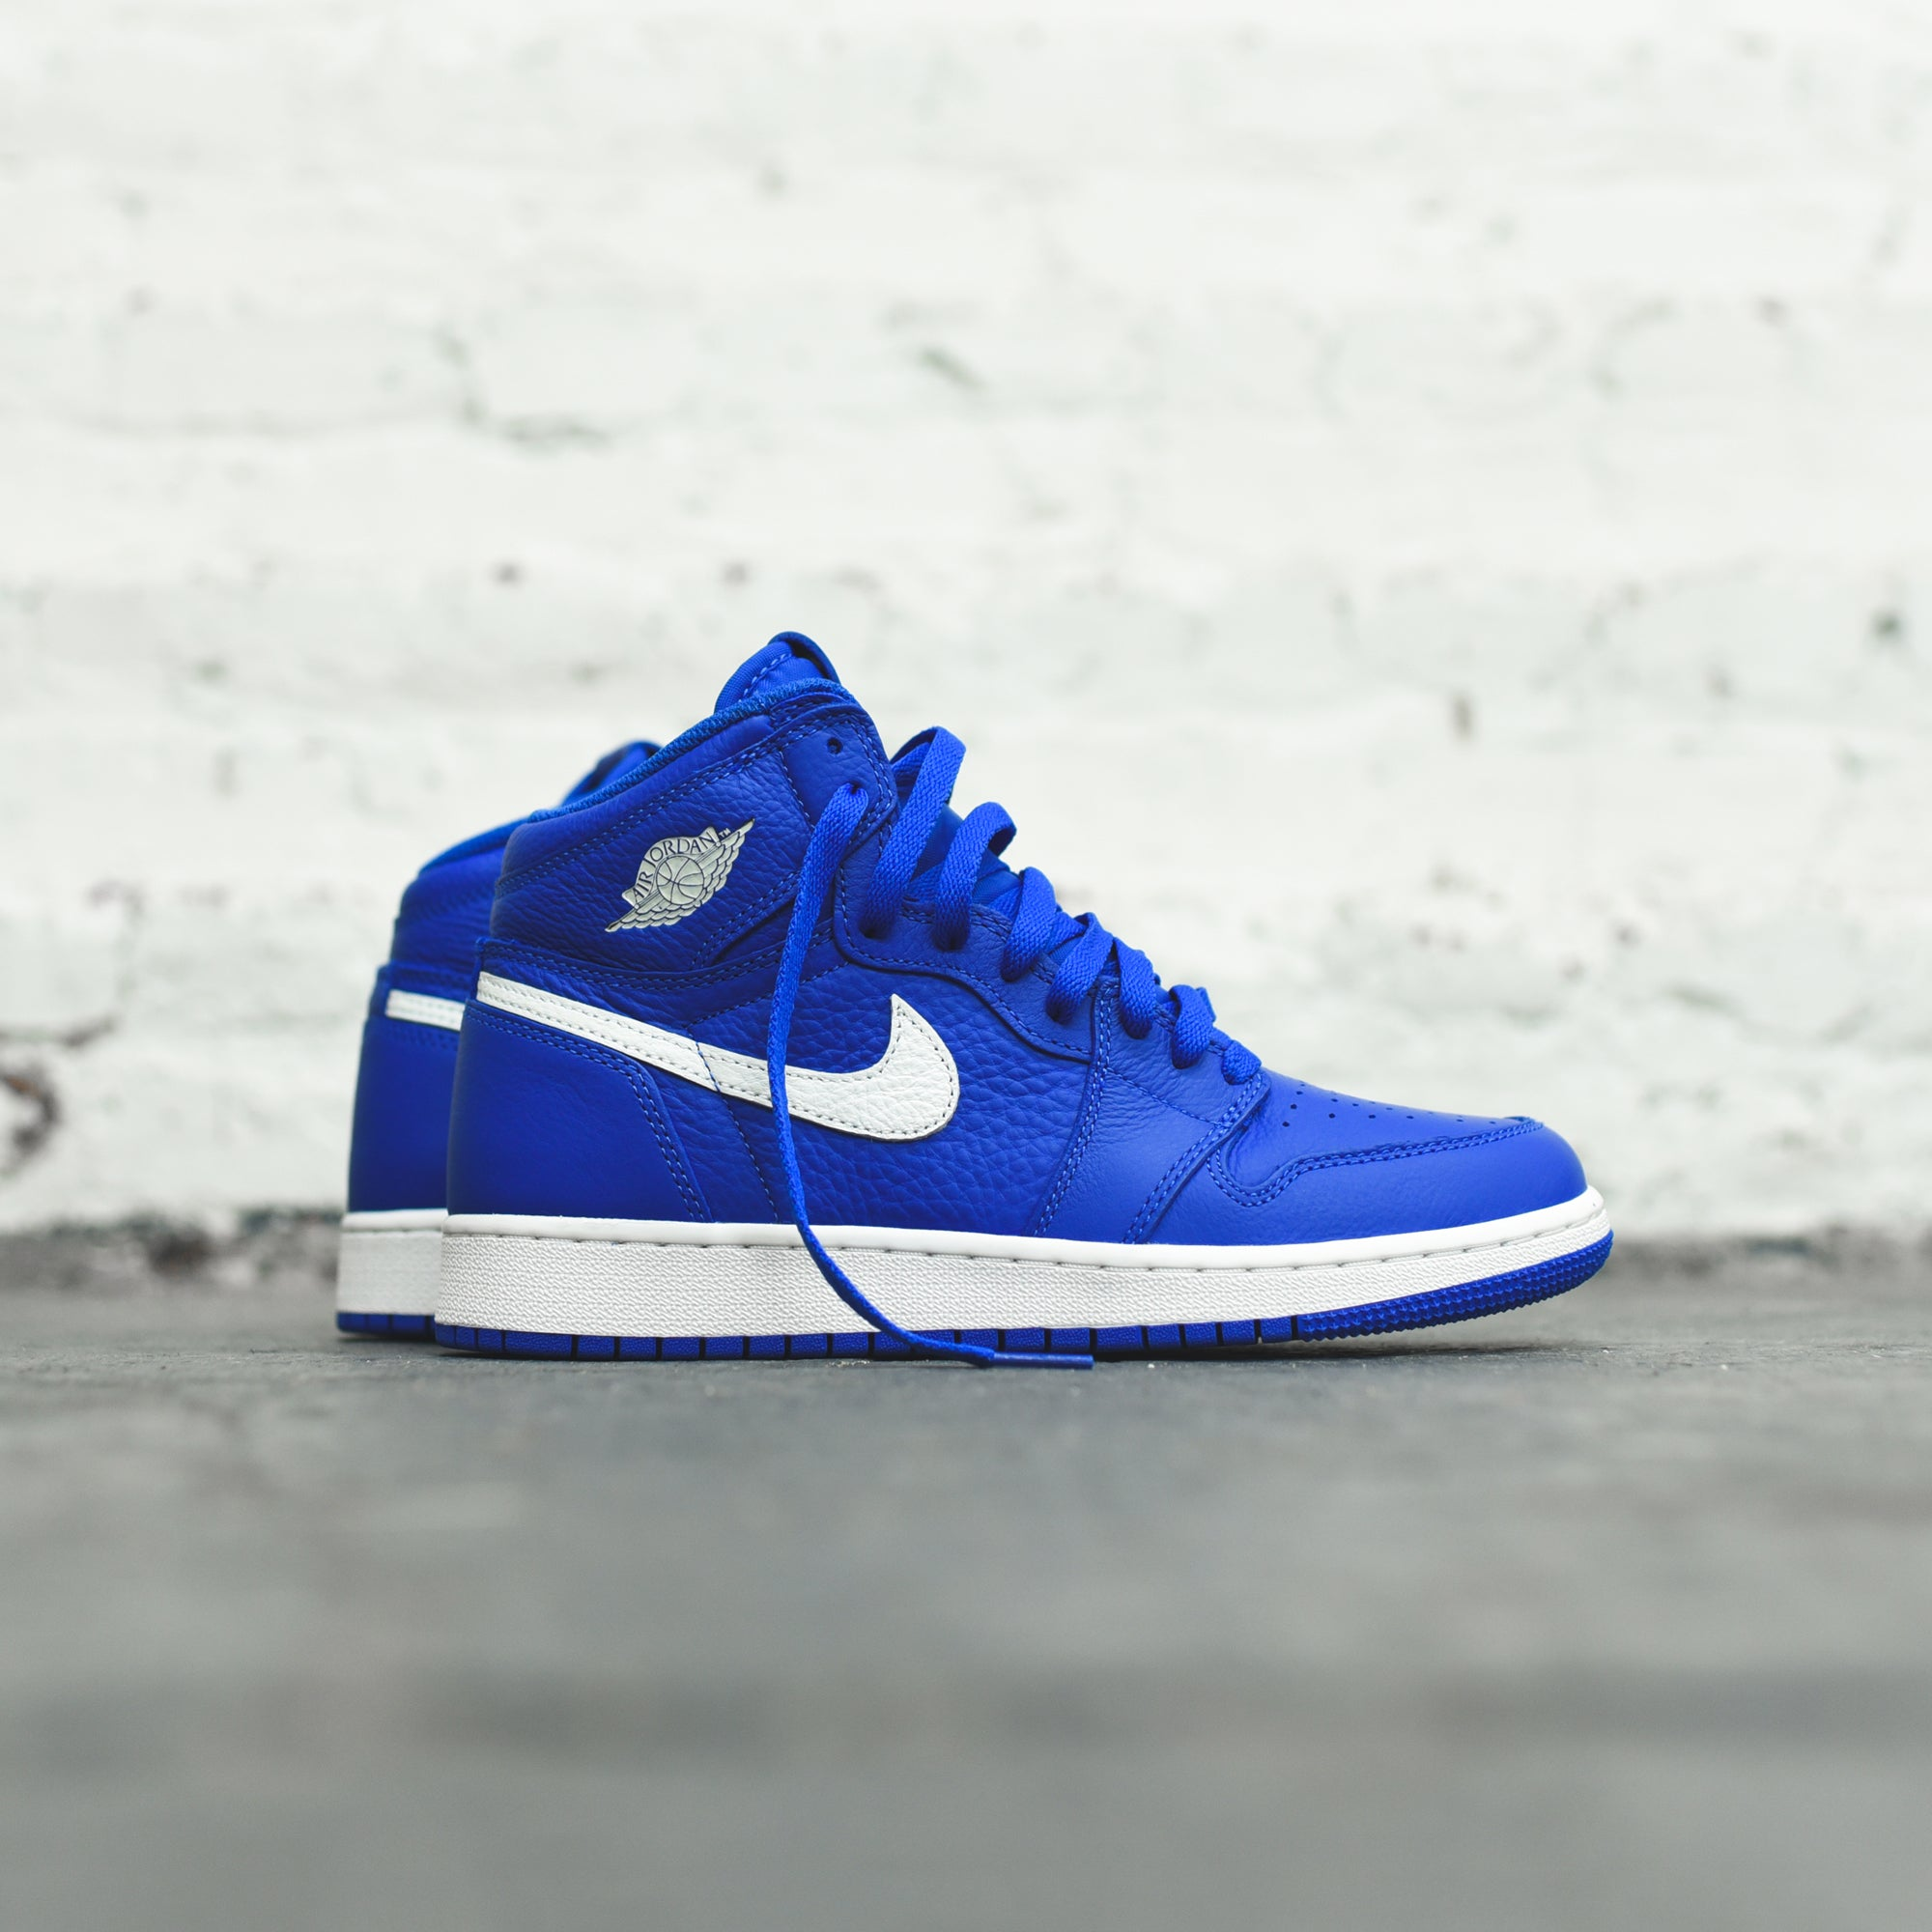 efb570f3947689 Nike GS Air Jordan 1 - Hyper Royal   Sail. July 07